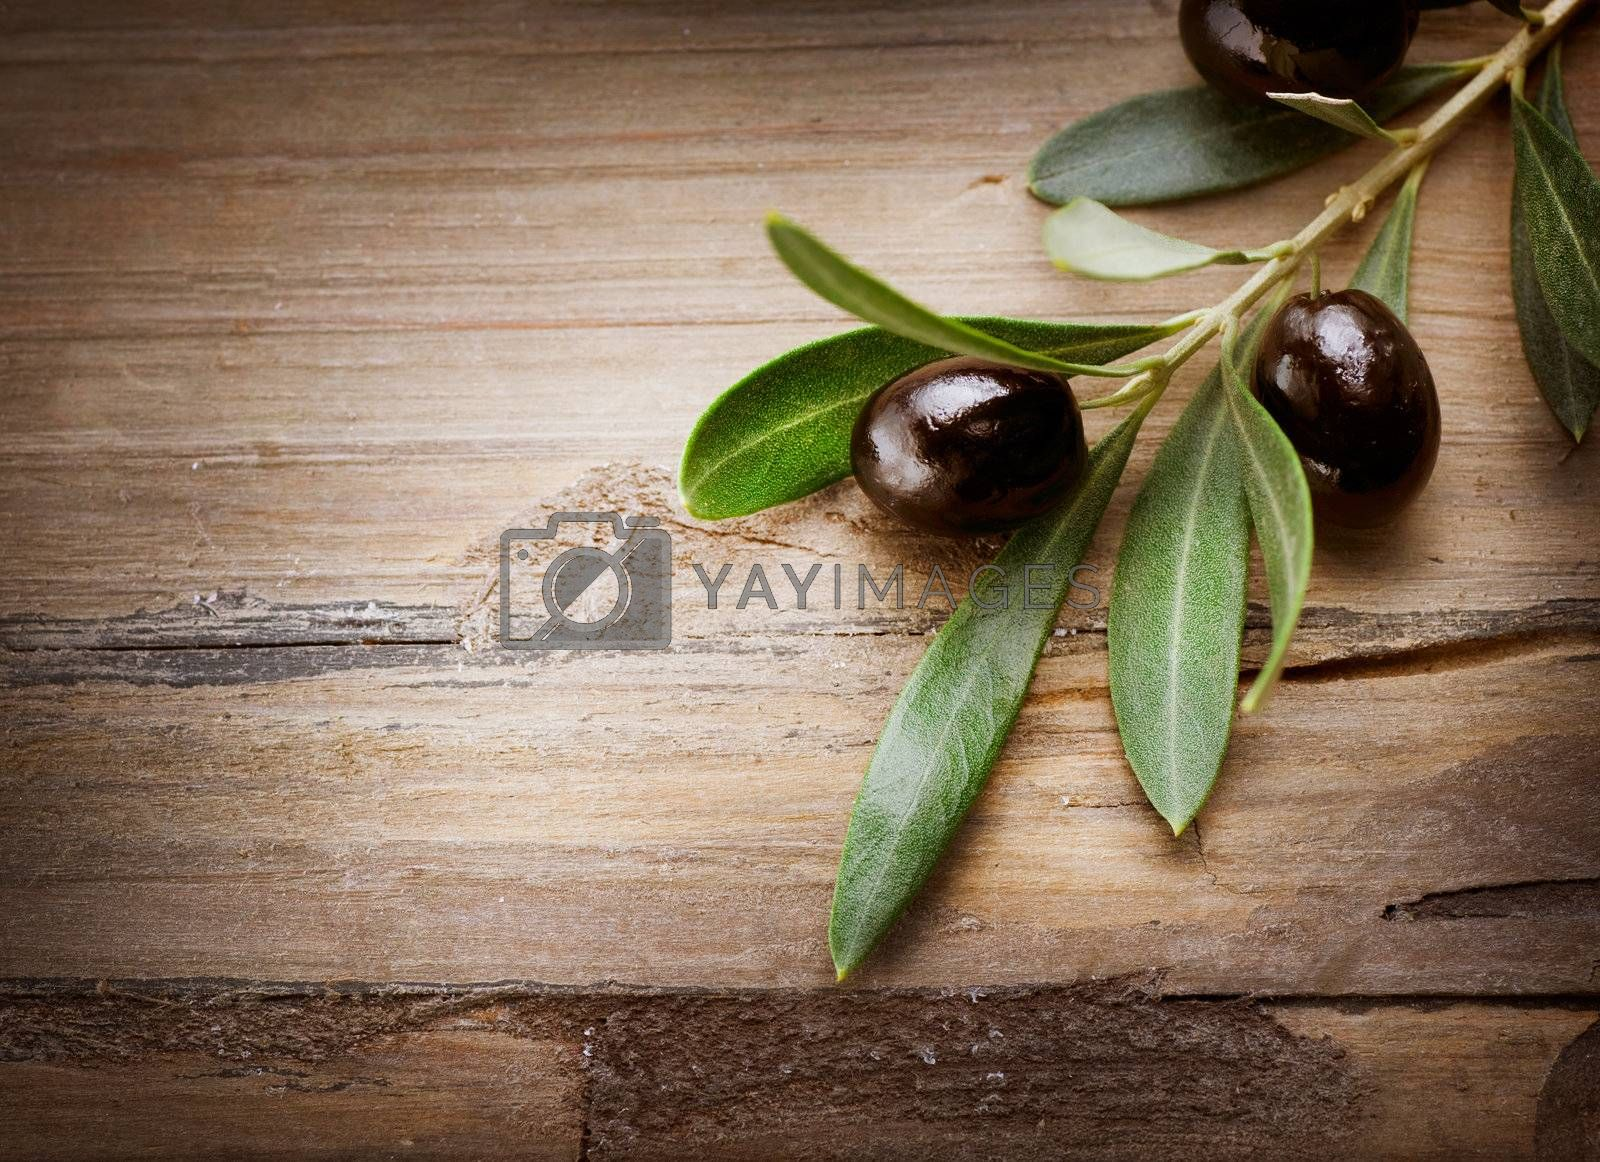 Olives over Wood Background by Subbotina Anna